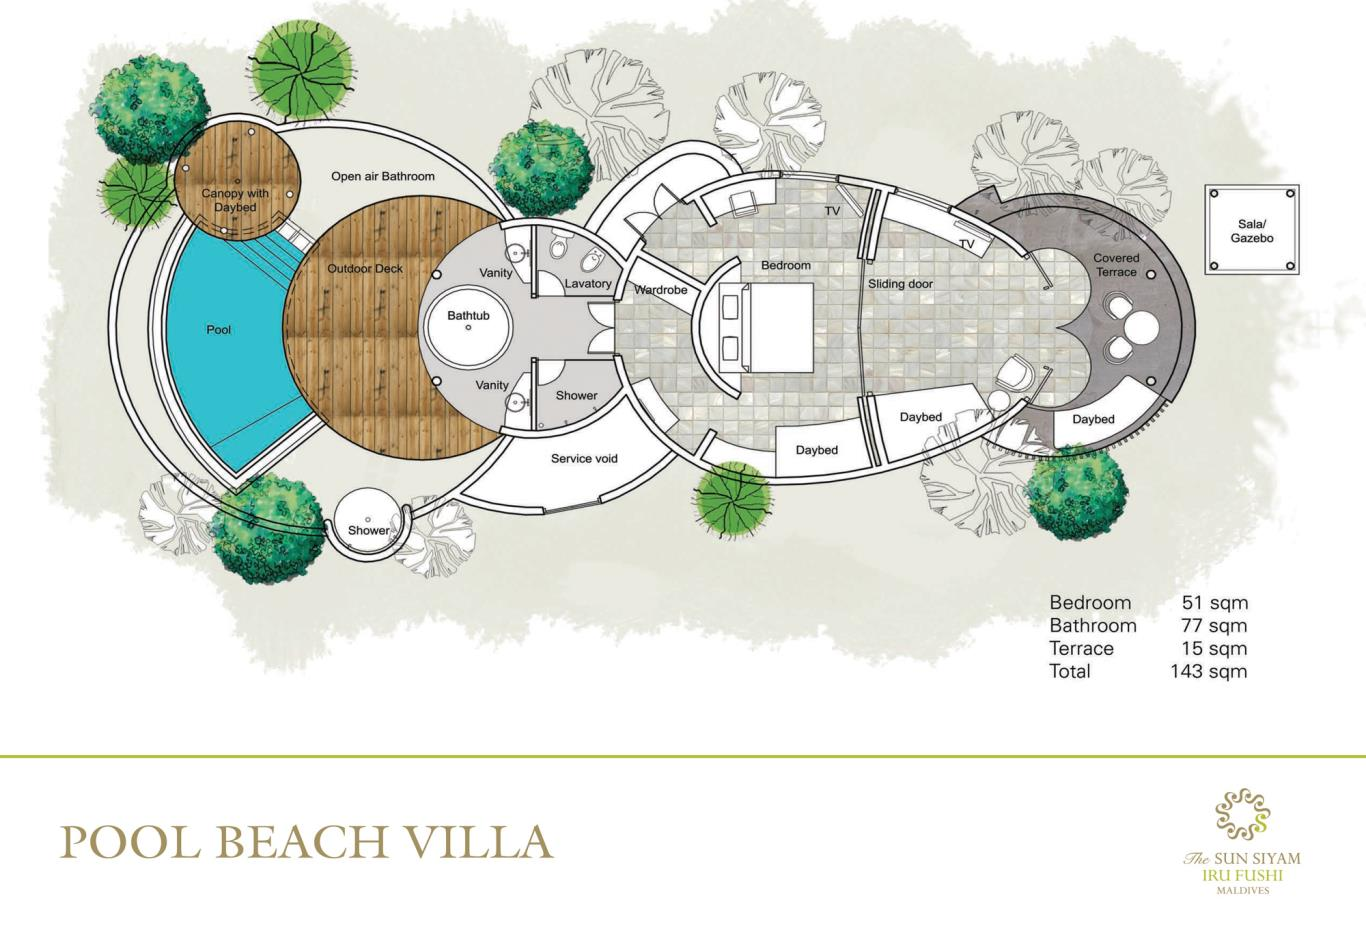 Pool Beach Villa Floorplan